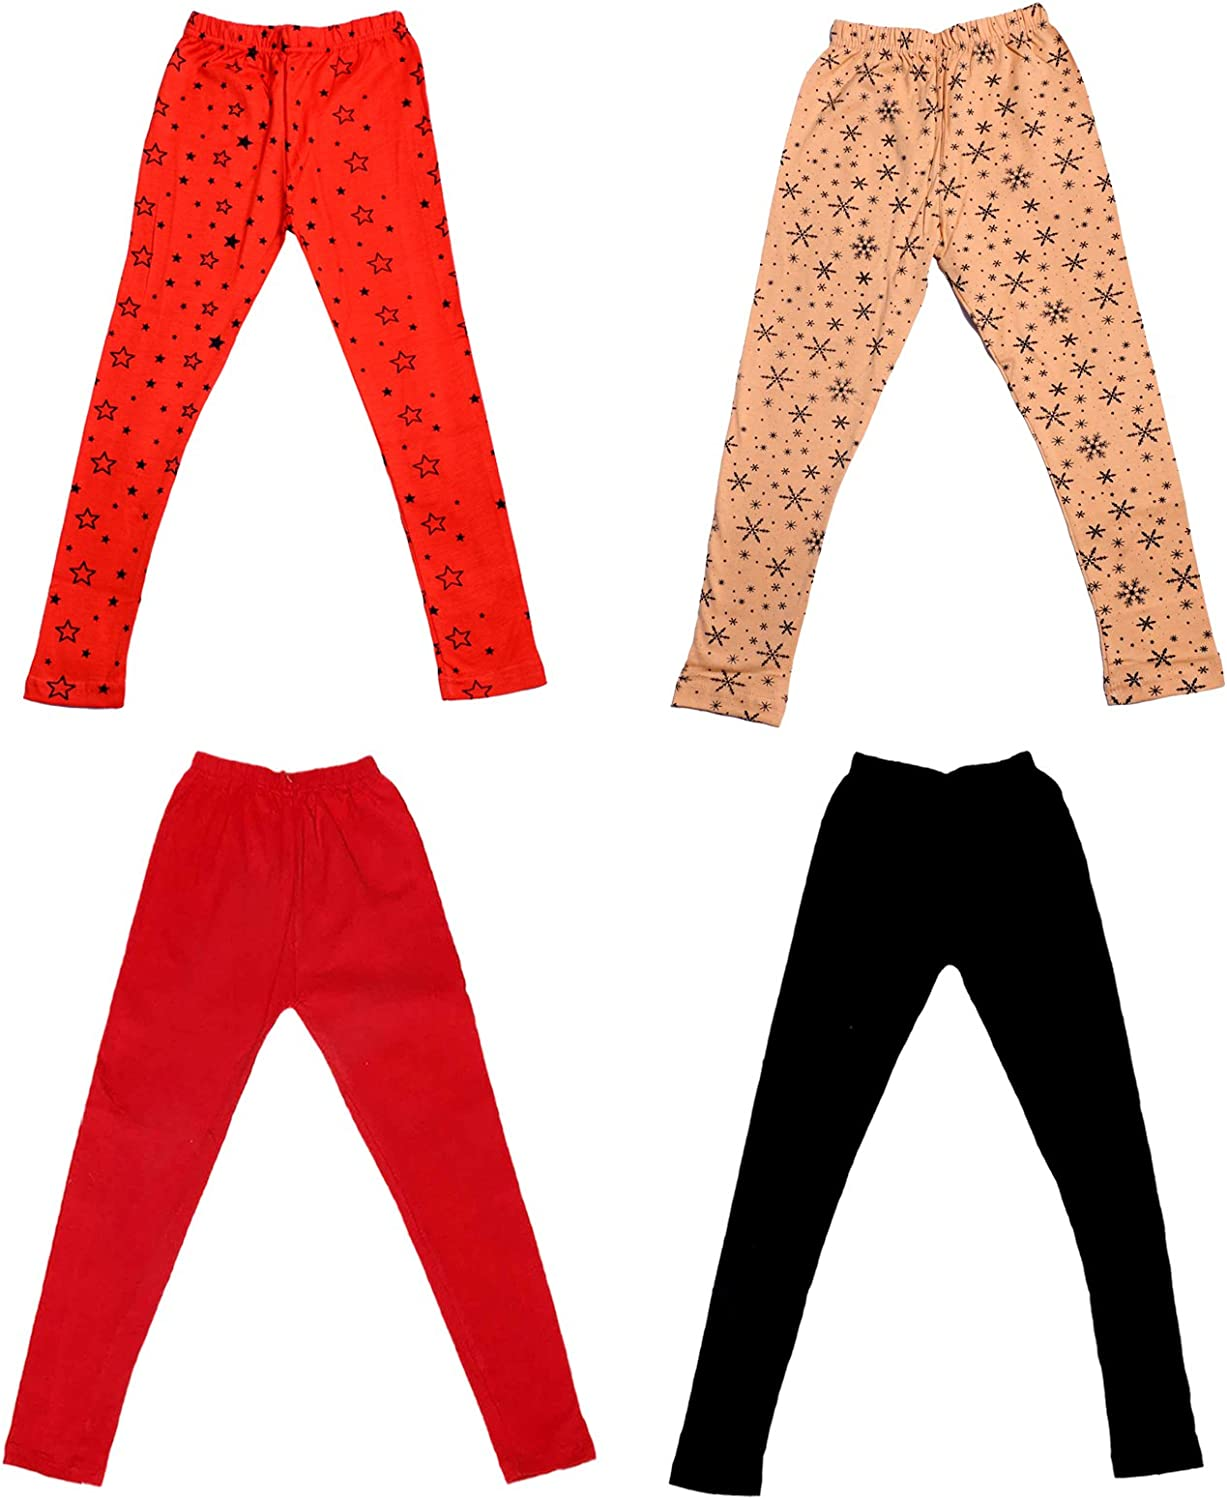 Indistar Girls 2 Cotton Solid Legging Pants Pack Of 4 /_Multicolor/_Size-1-3 Years/_71404051619-IW-P4-22 and 2 Cotton Printed Legging Pants